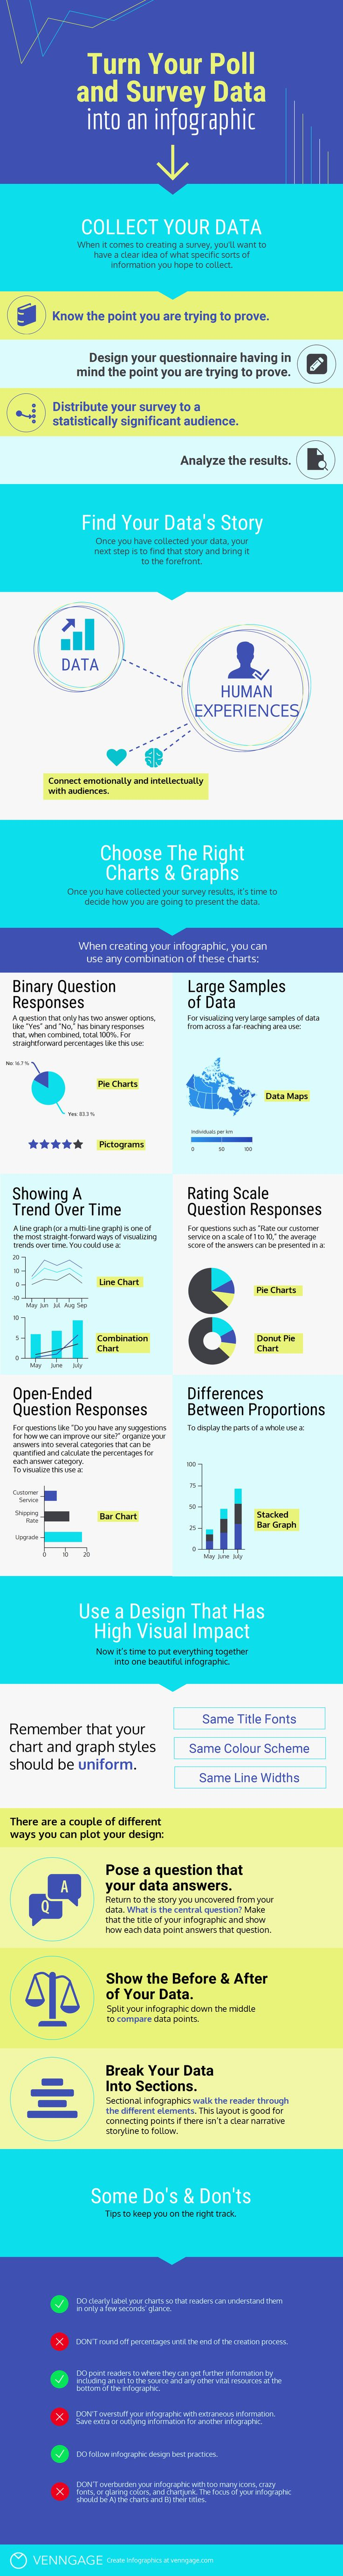 How To Make An Infographic From Your Poll And Survey Data In 4 Steps